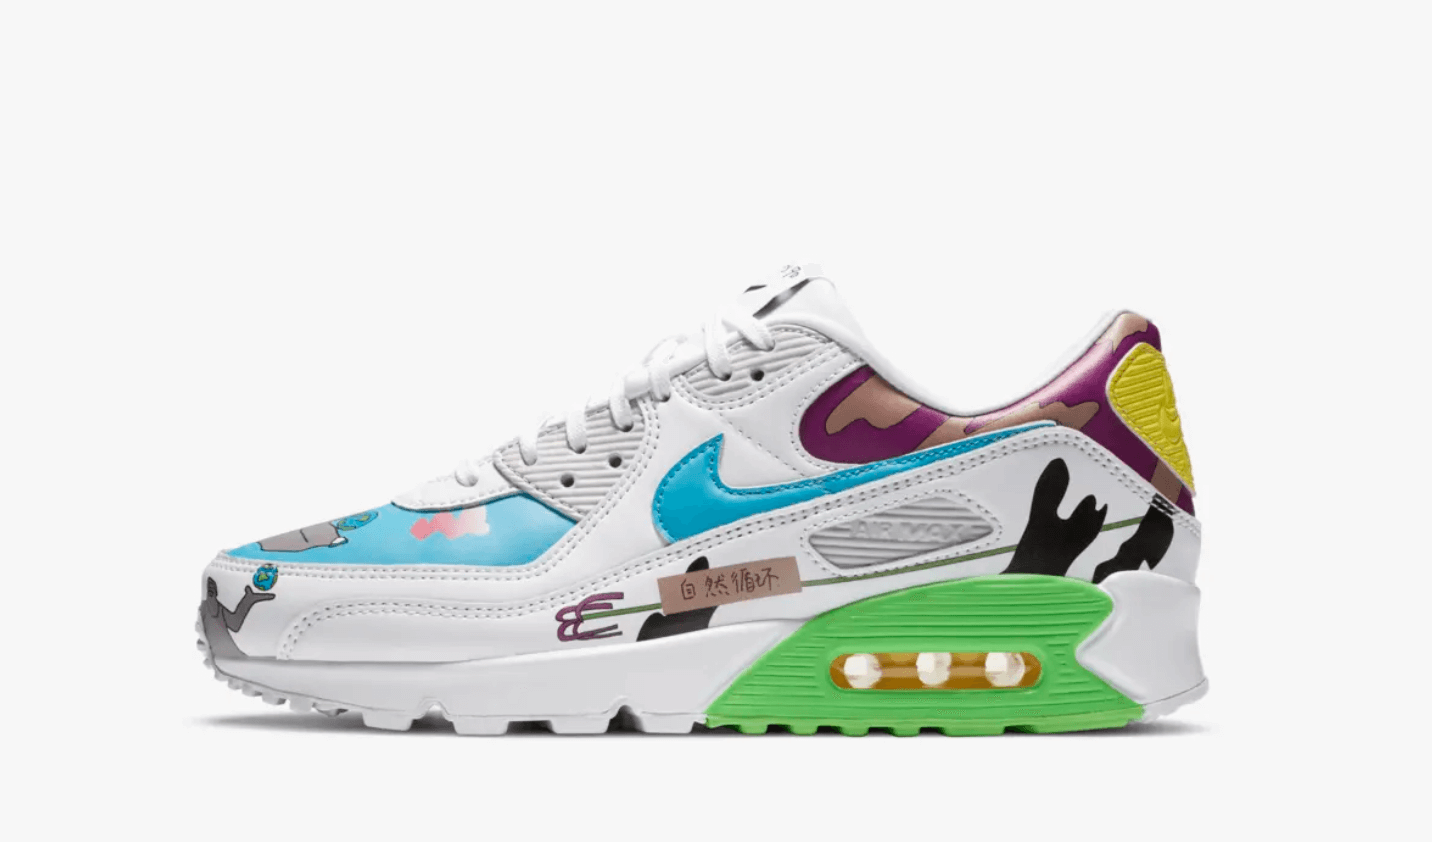 Nike Air Max 90 flyleather Rouhan Wang 202